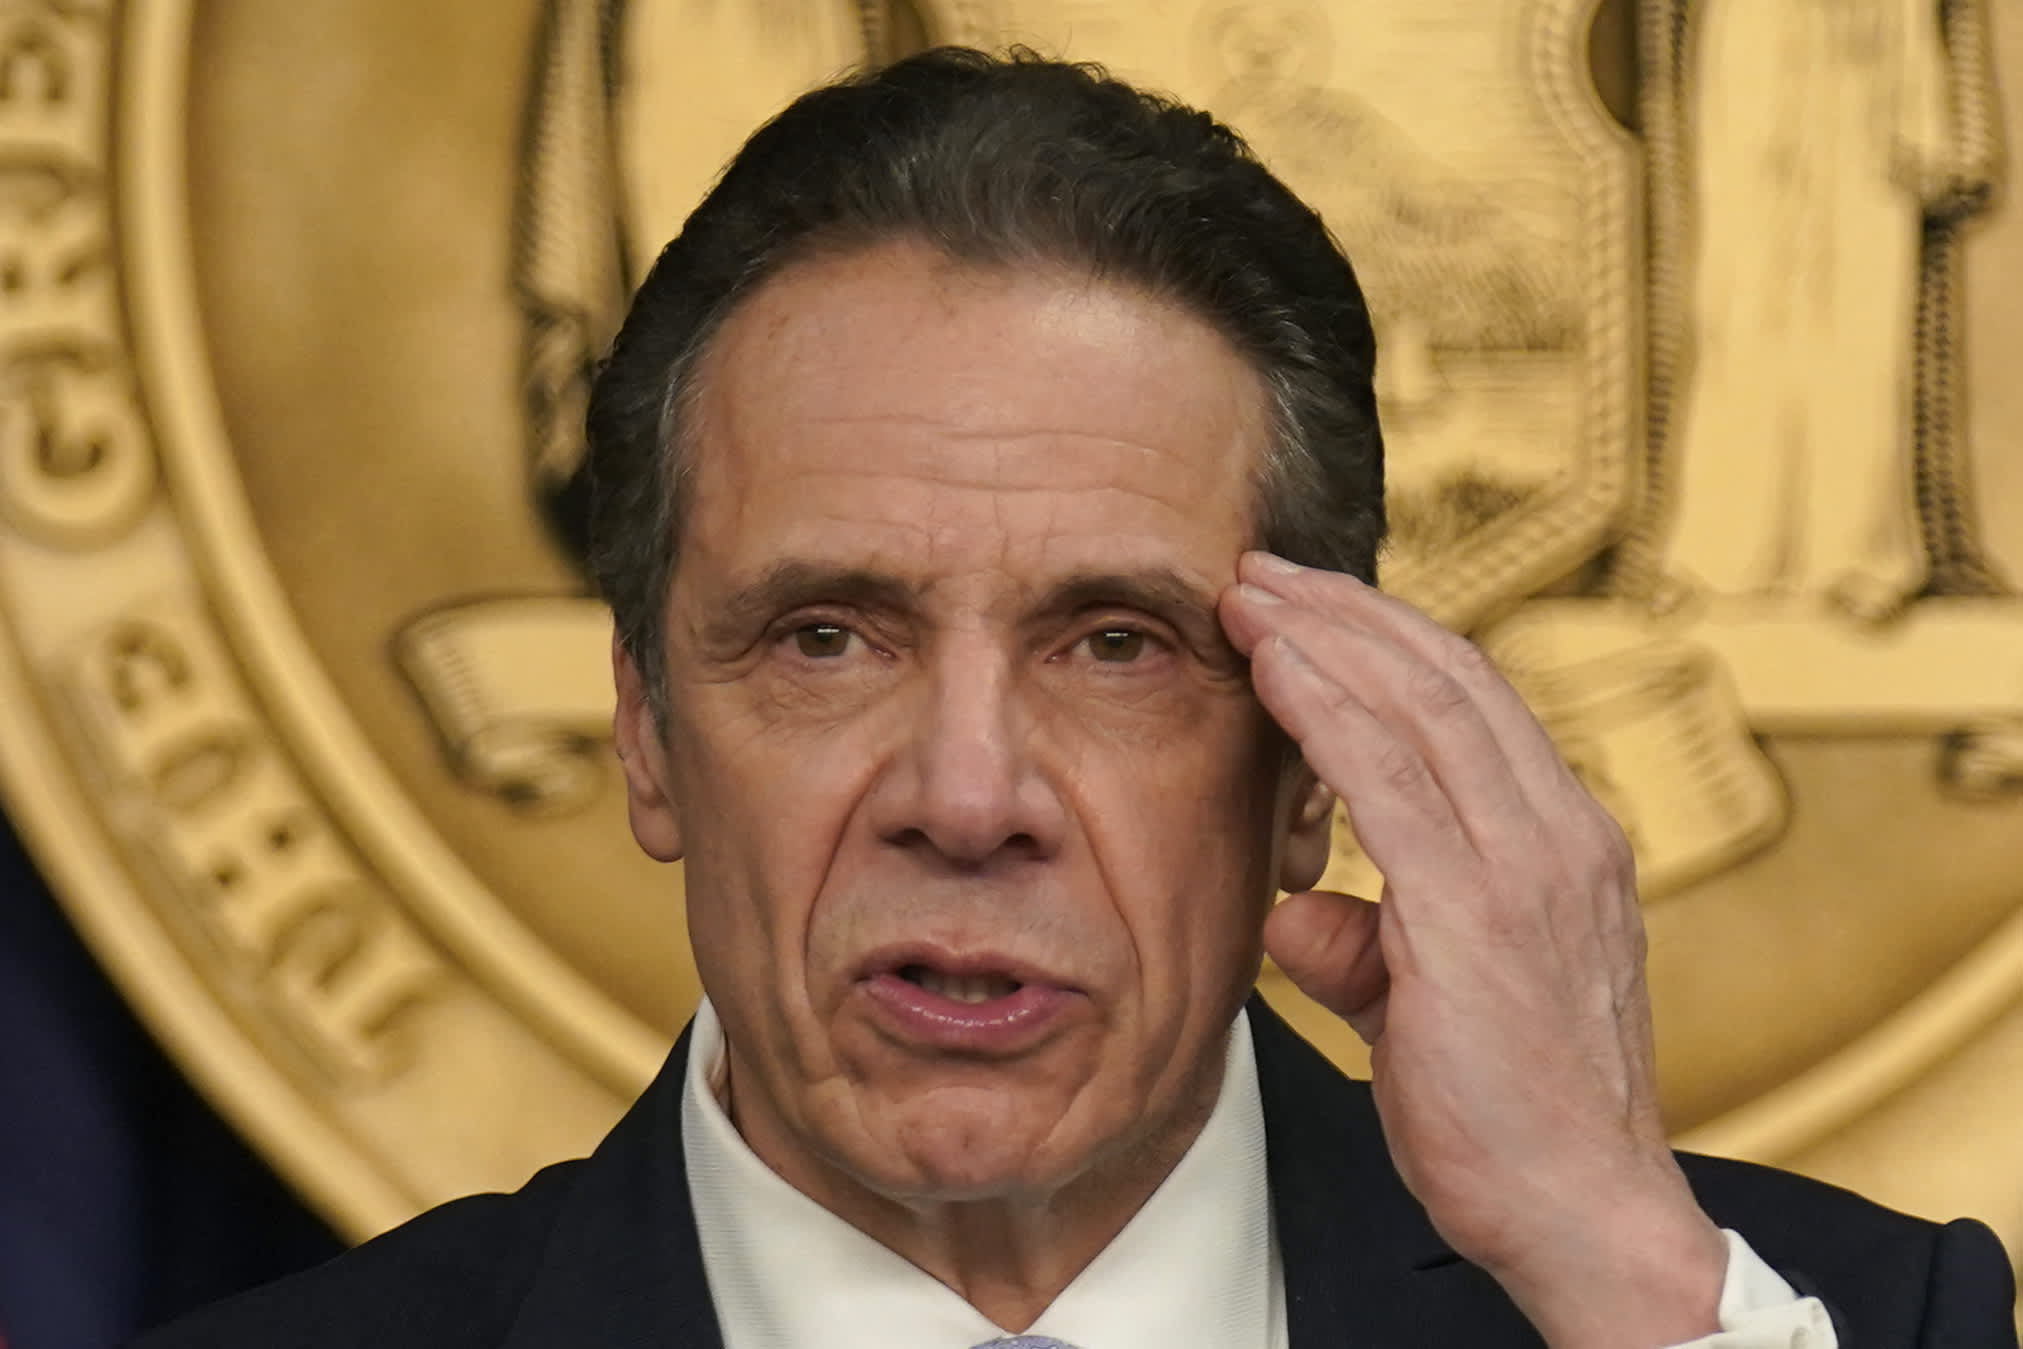 Current Cuomo aide accuses him of unwanted sexual advances, looking down her shirt, report states thumbnail